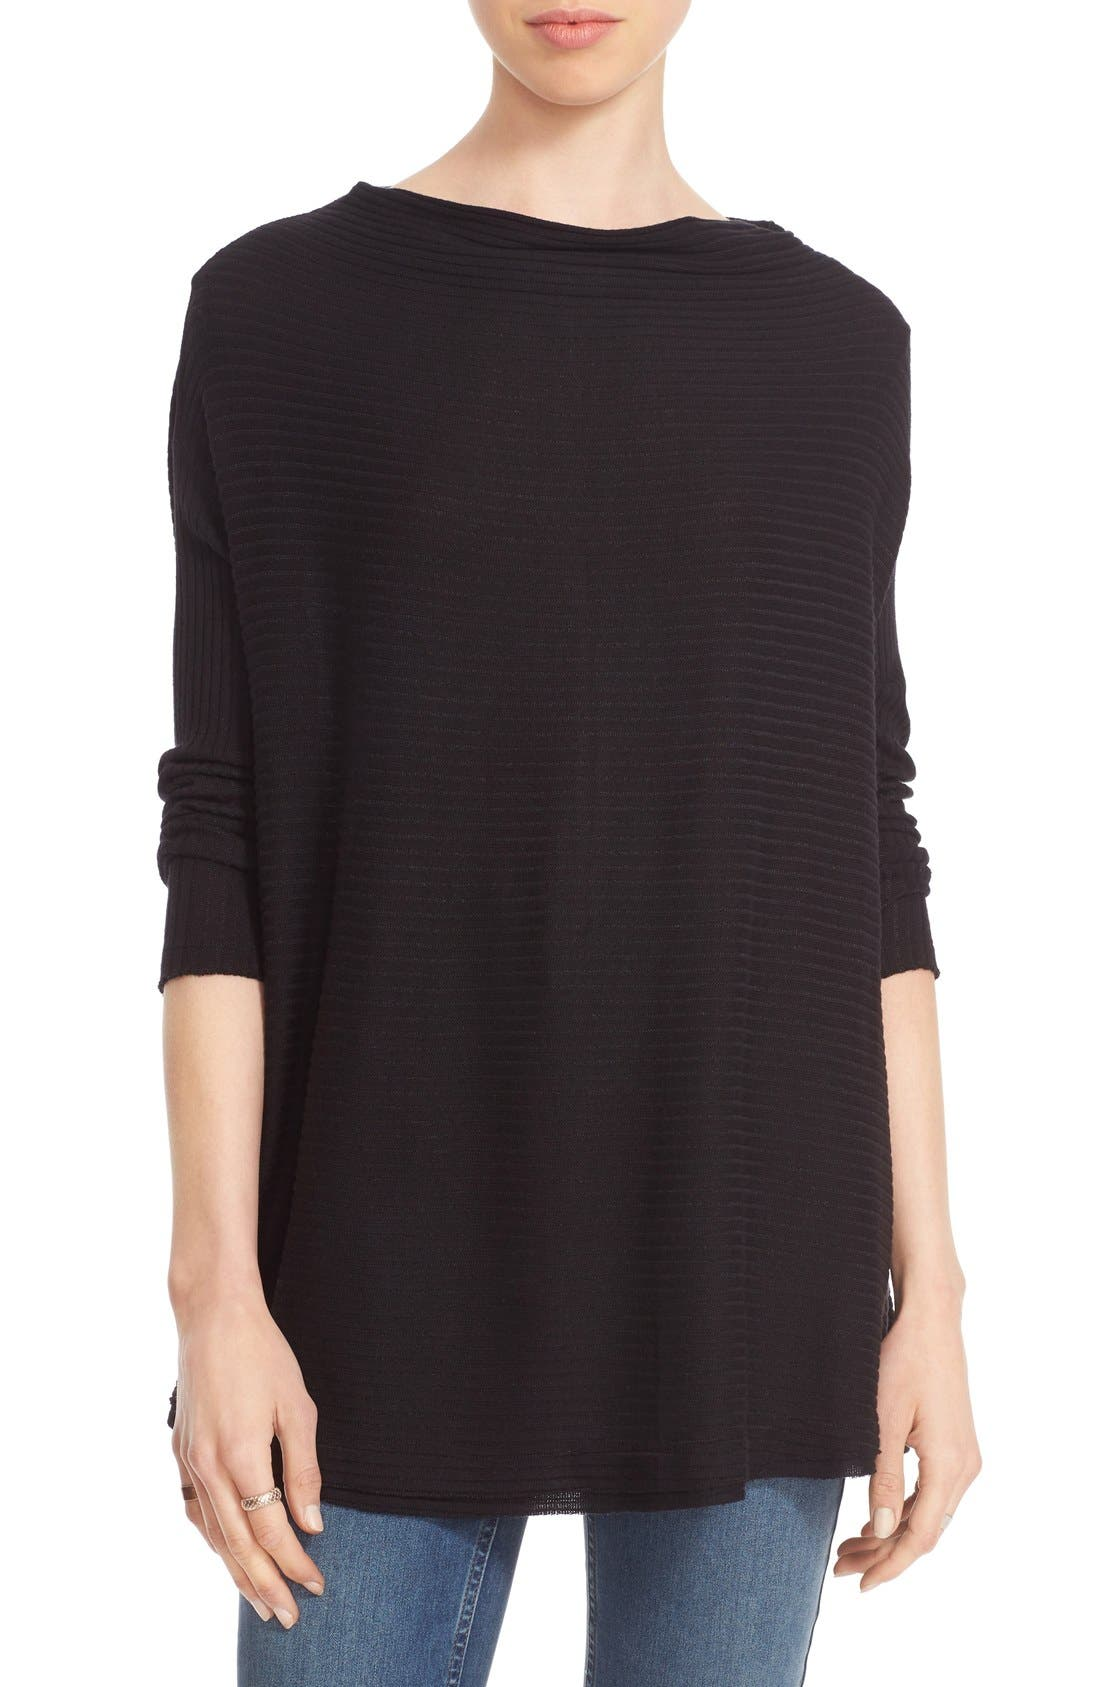 FREE PEOPLE 'Love' Split Back Pullover